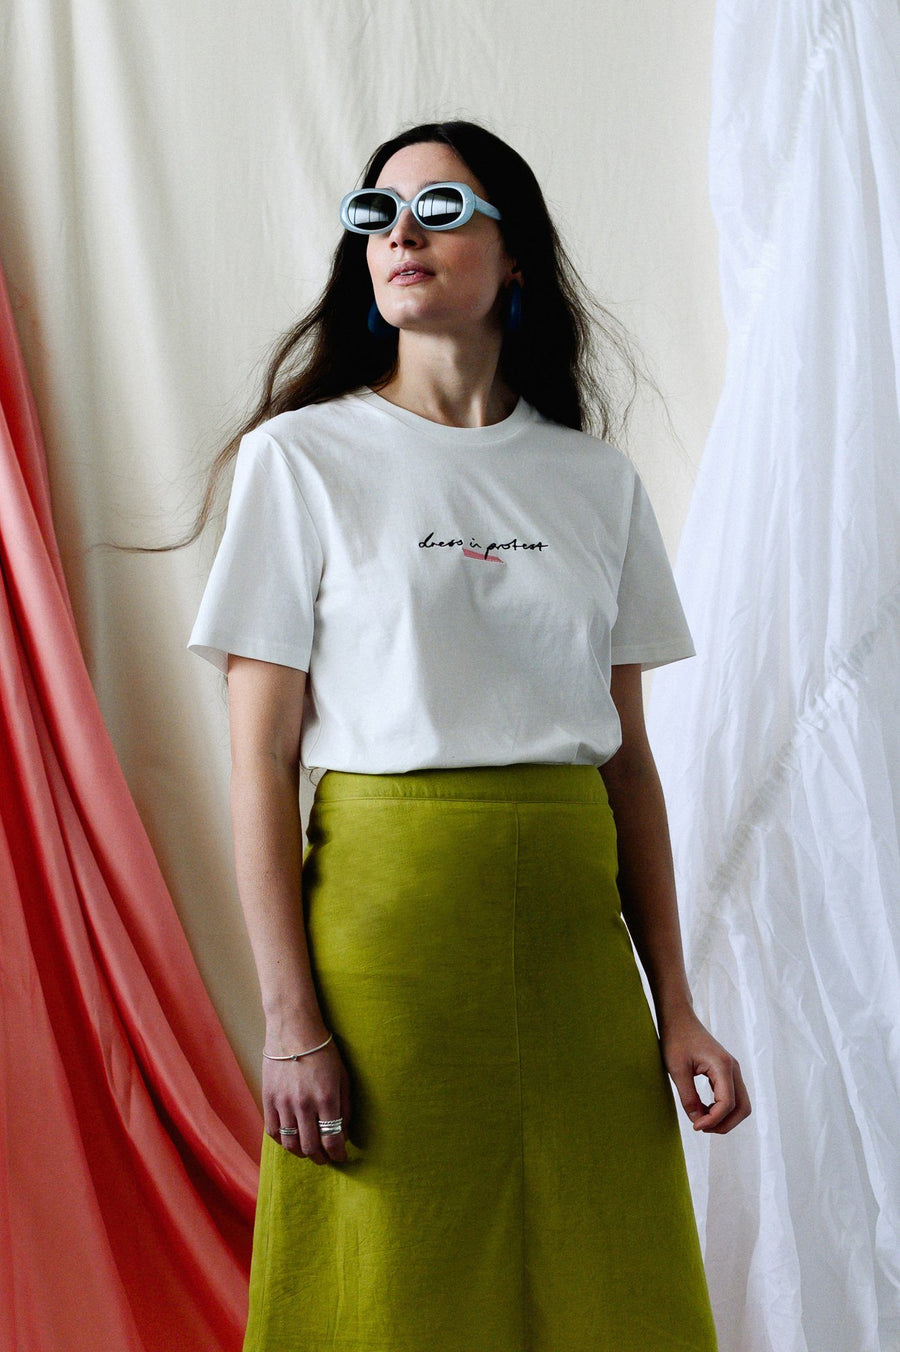 Dress in Protest Embroidered Organic Cotton T-Shirt